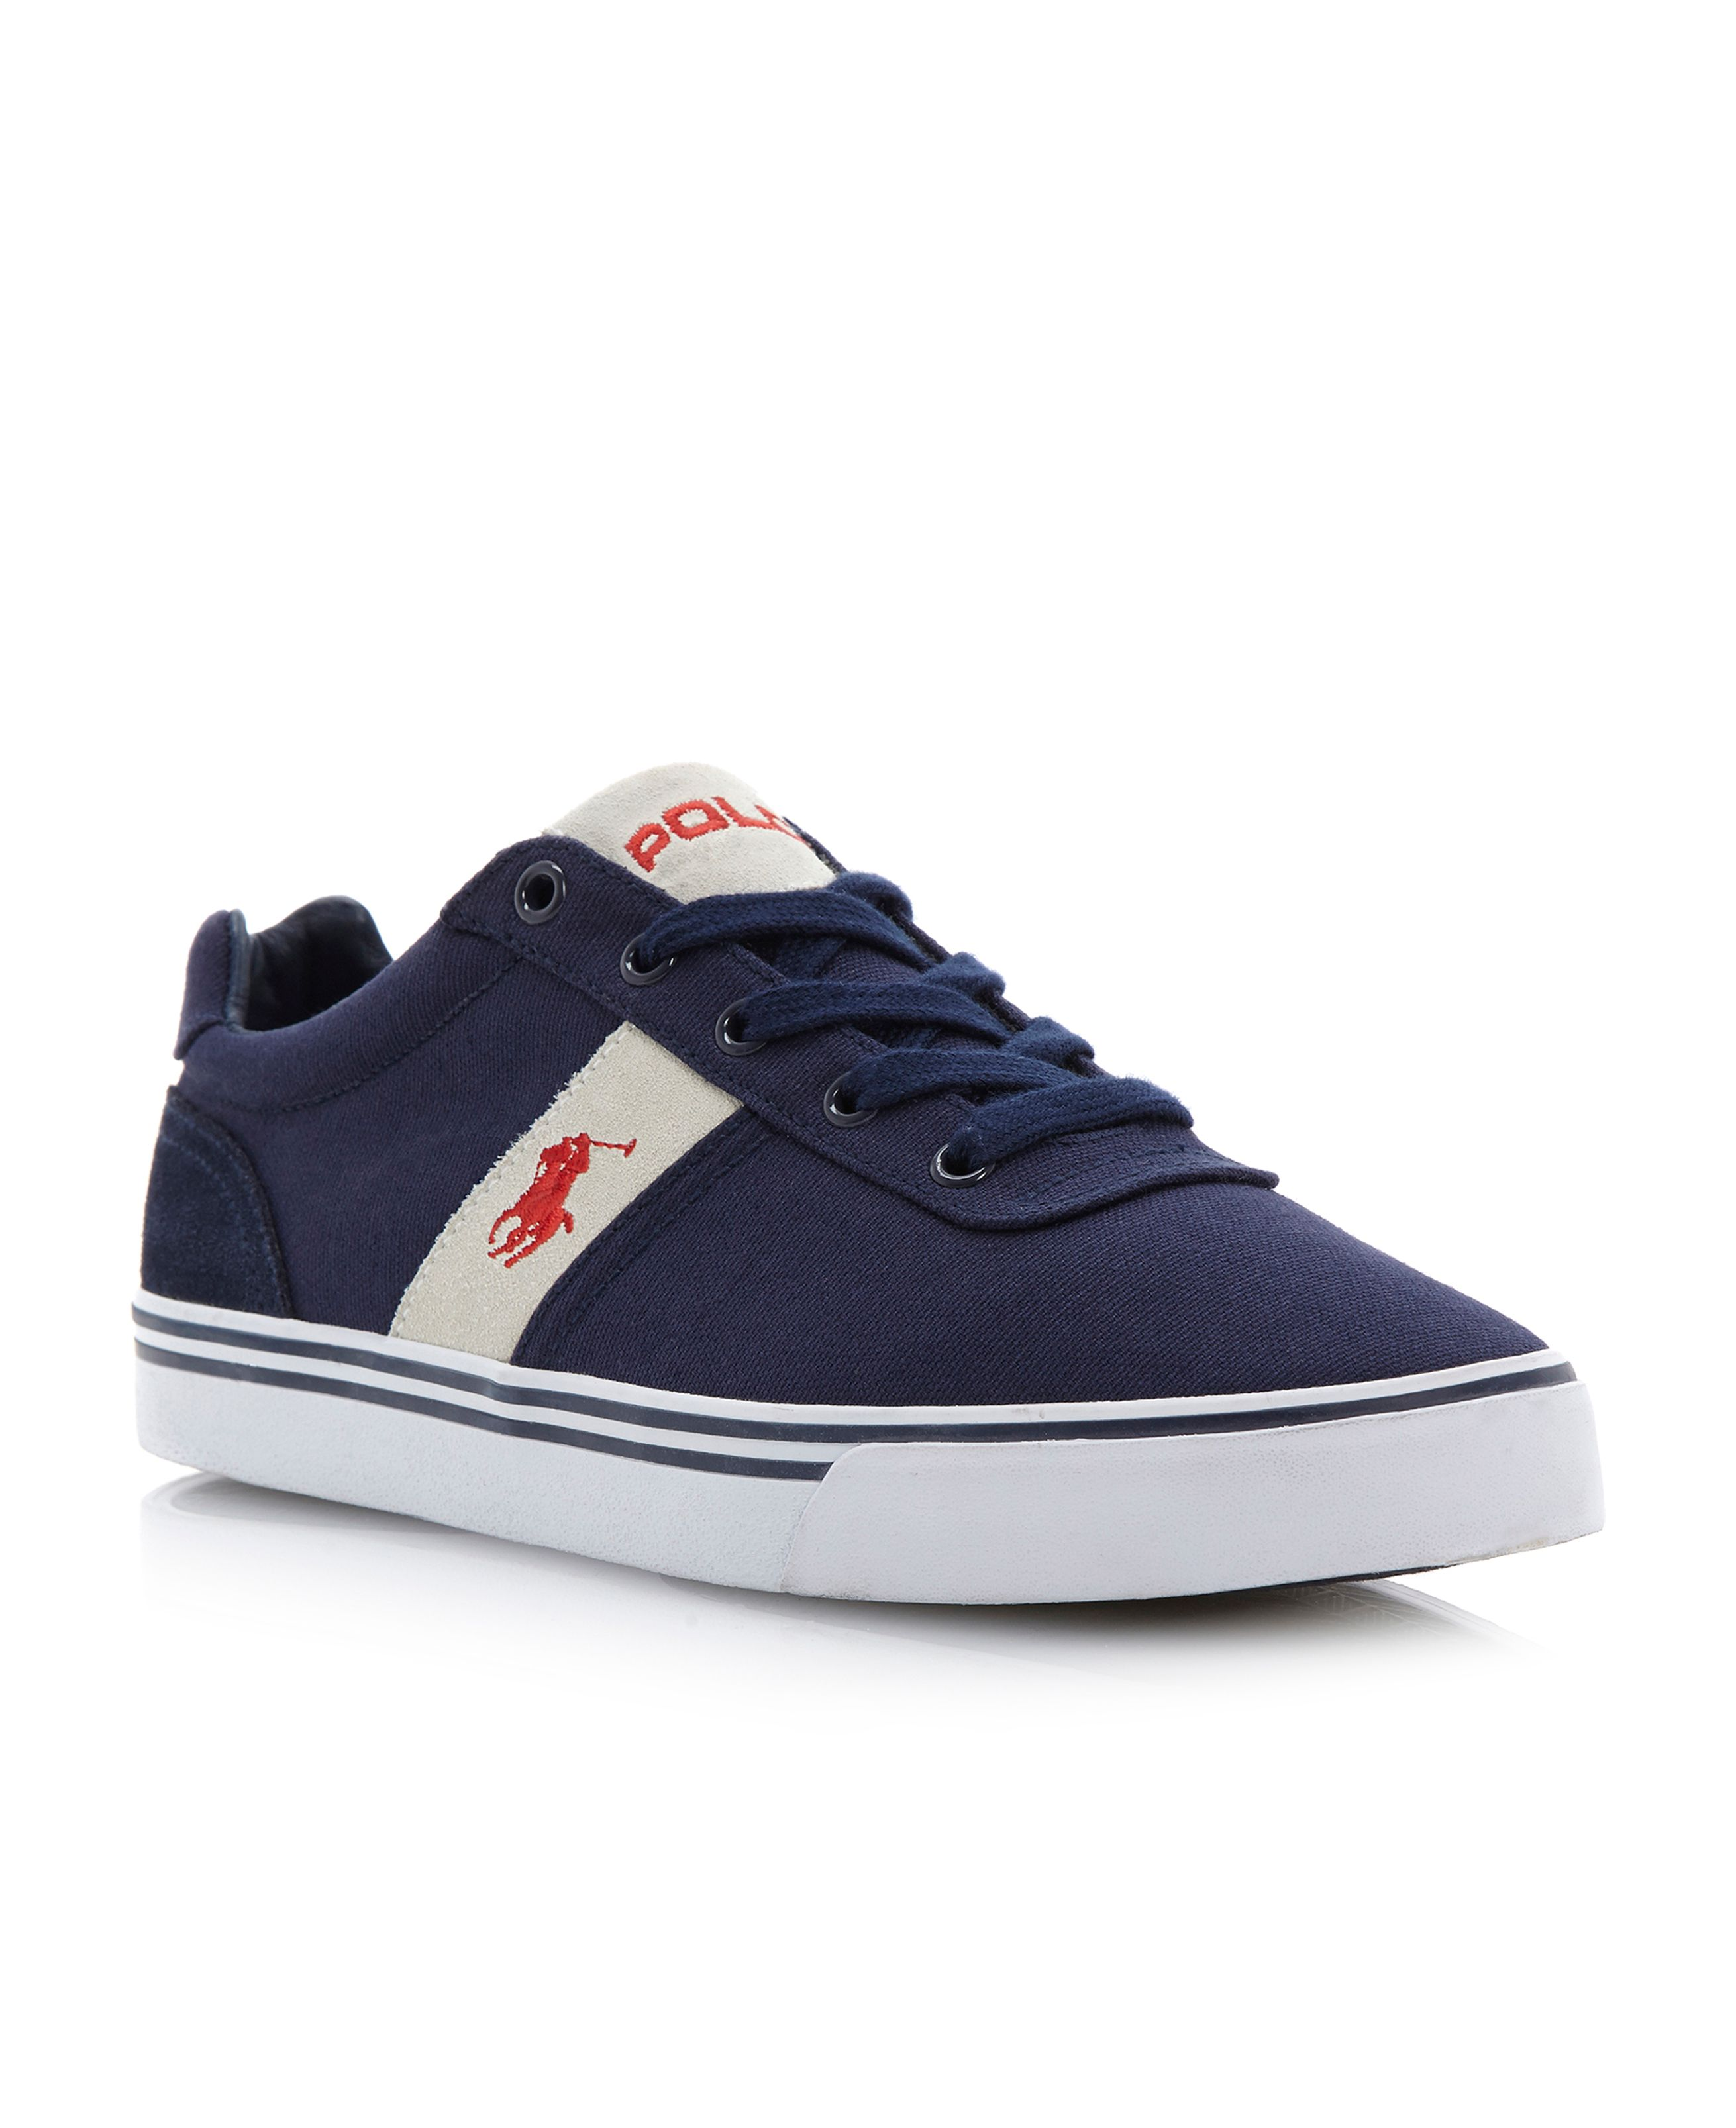 Hanford-Ne suede side stripe sneaker trainers